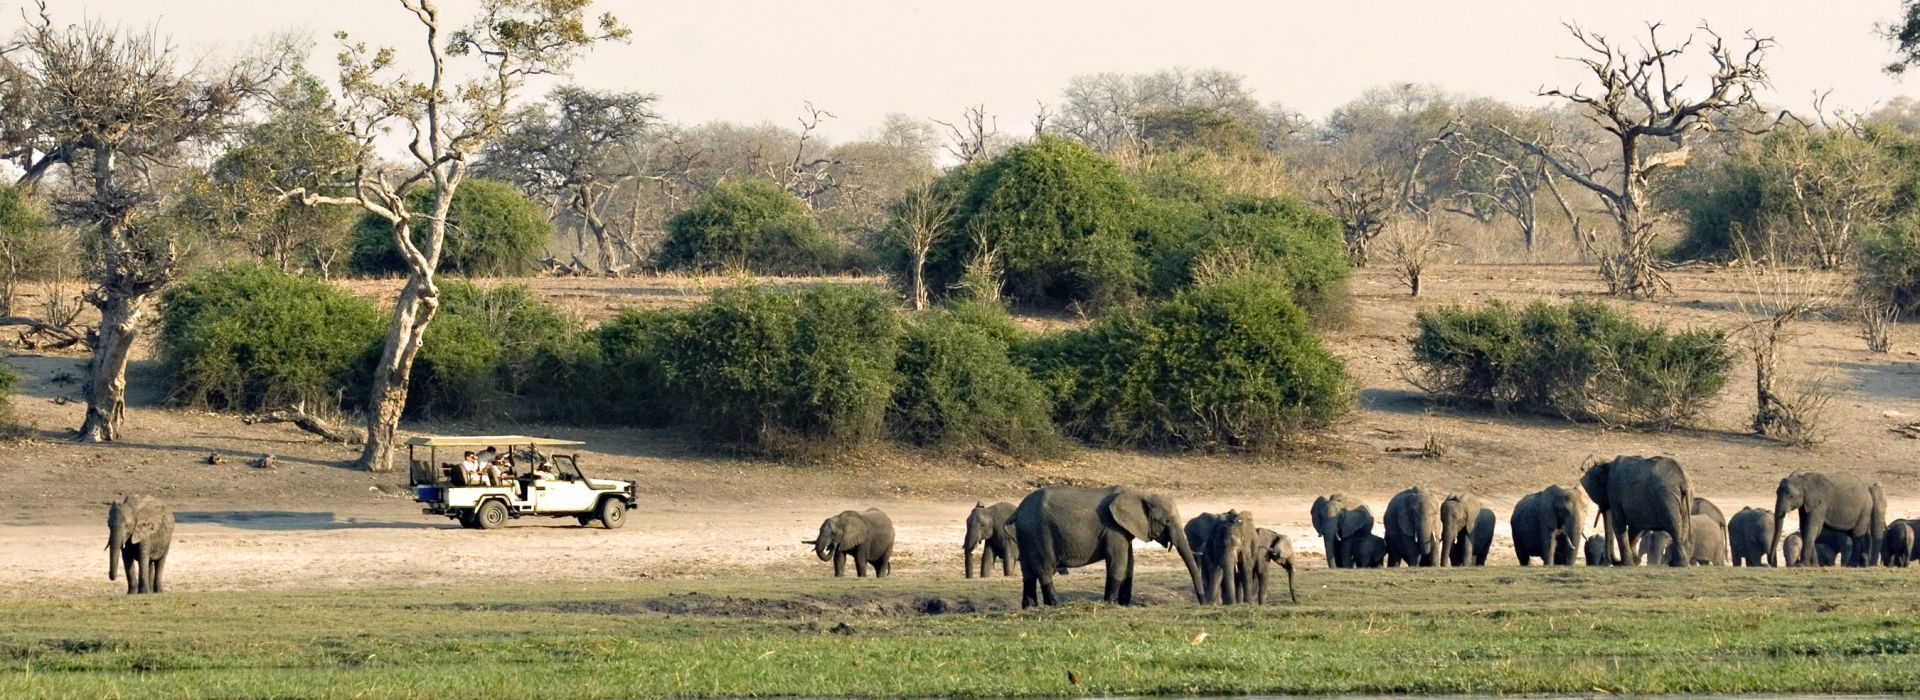 Active and outdoor Tours in Botswana